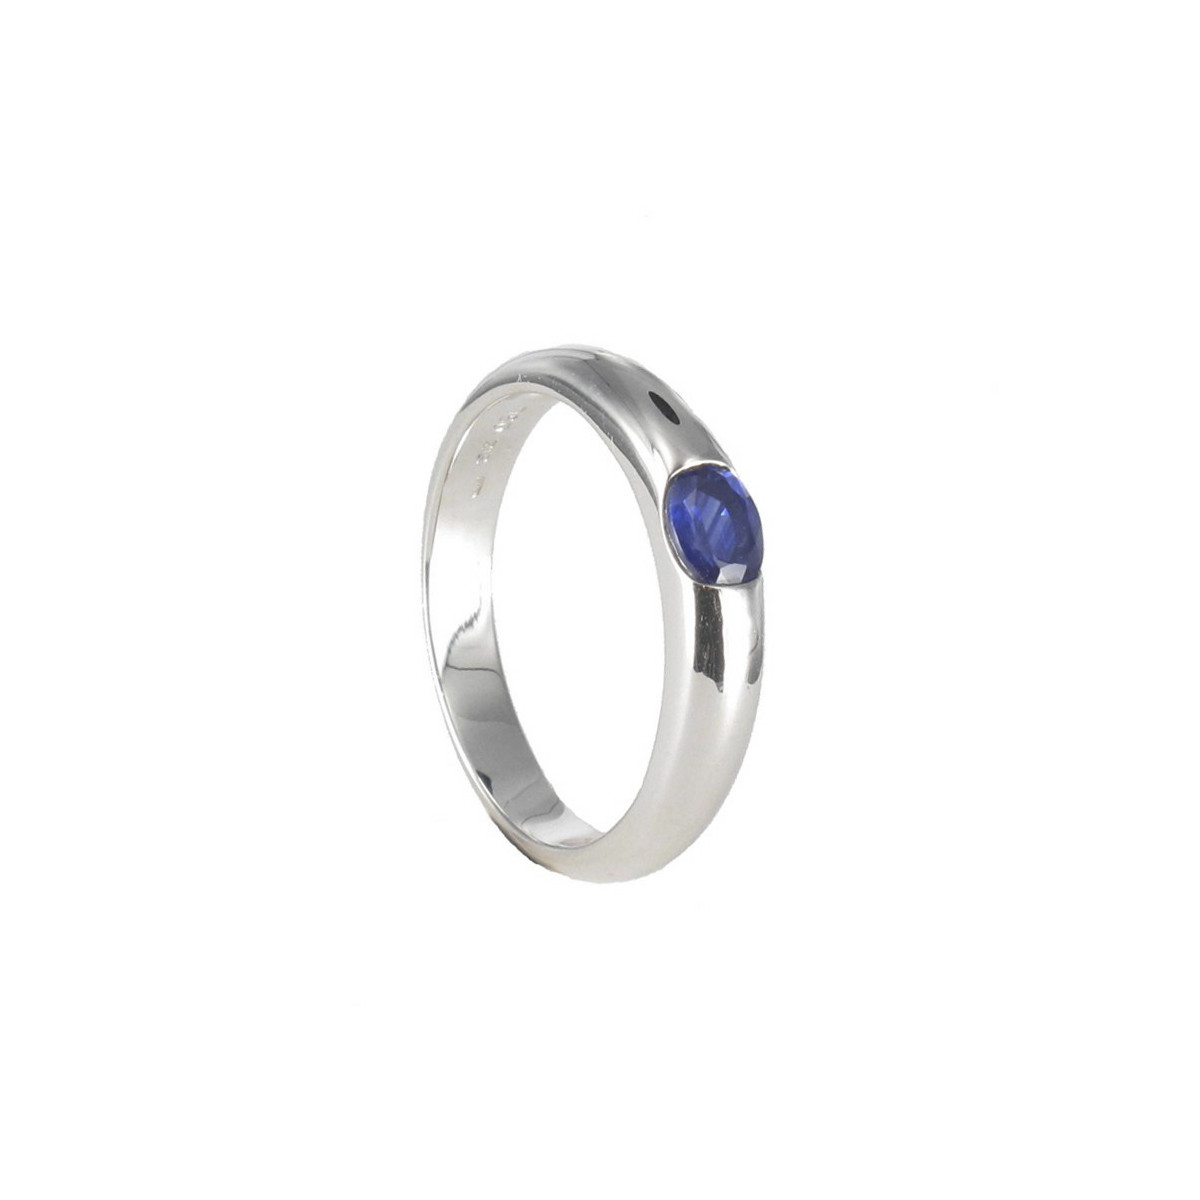 GOLD RING WITH AIR SAPPHIRE